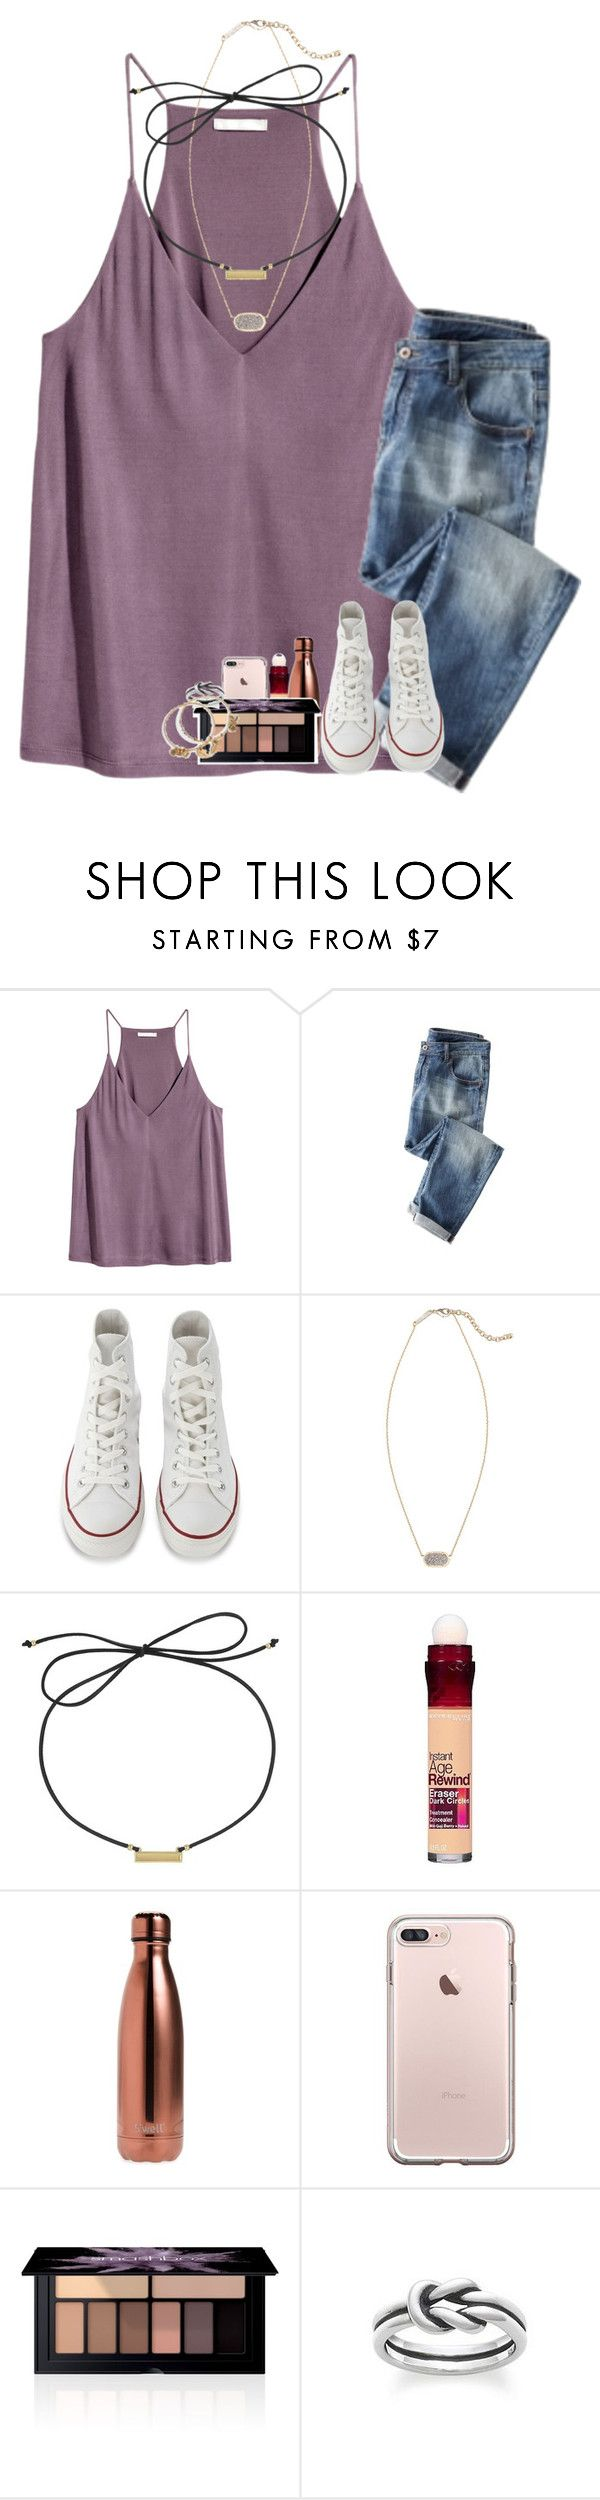 """""""study date with ella today"""" by kyliegrace ❤ liked on Polyvore featuring H&M, Converse, Kendra Scott, Laundry by Shelli Segal, Maybelline, S'well, Smashbox, Avery and Alex and Ani"""